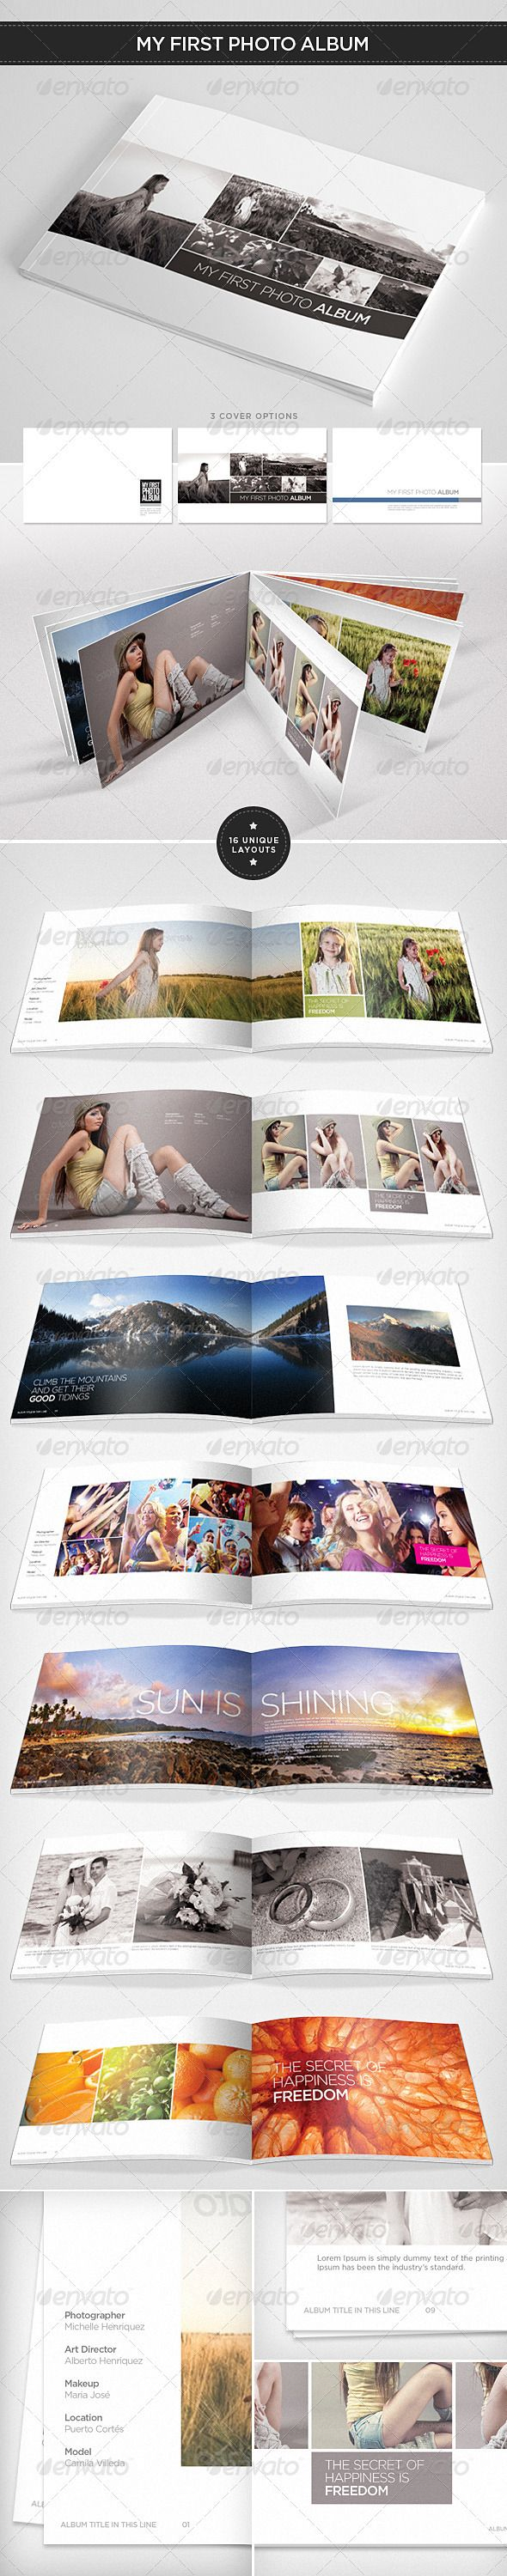 My First Photo Album - GraphicRiver Item for Sale